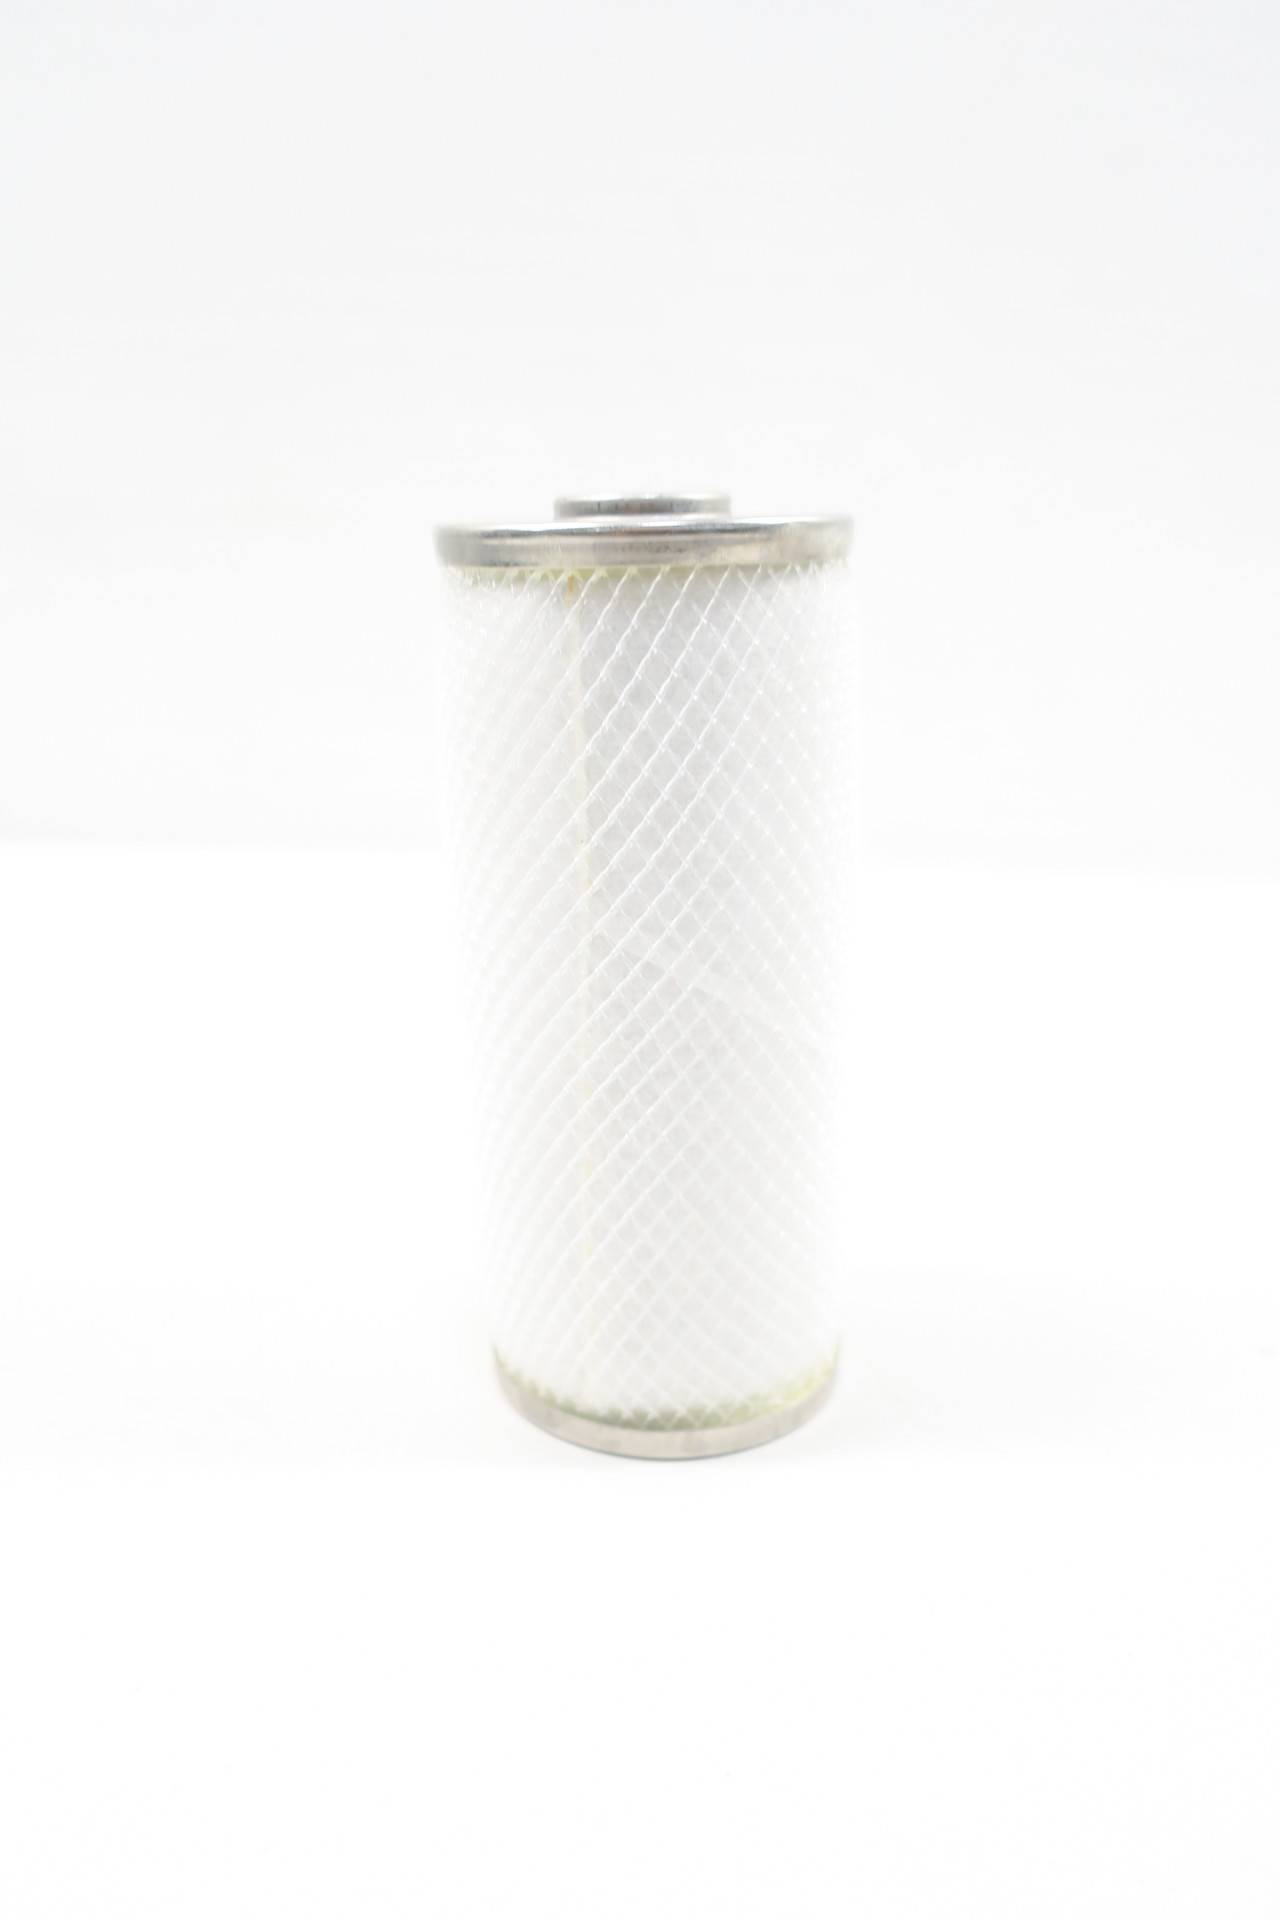 Cat 2013572 NEW SEALED Pneumatics Products Corporation POS060SU Filter Element